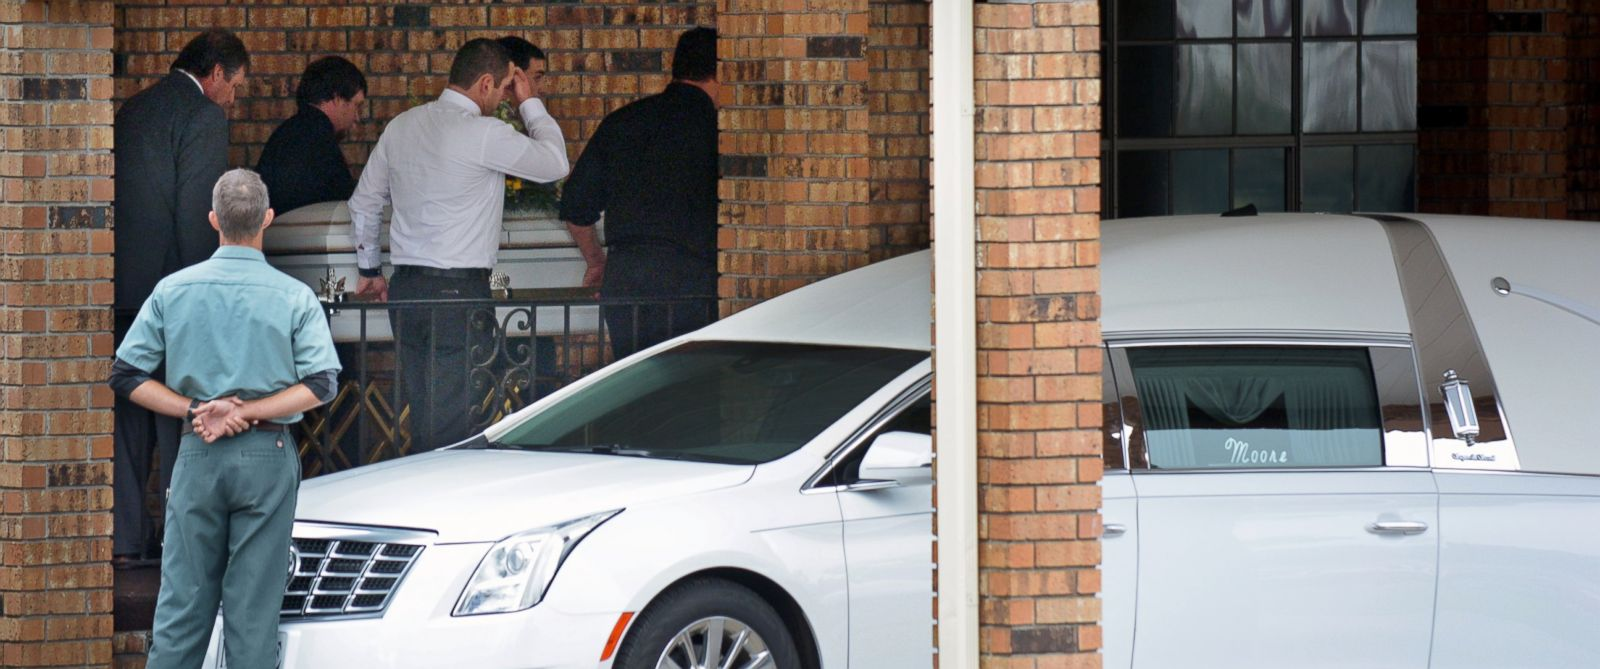 PHOTO: Pallbearers carry the body of 6-year-old Jeremy Mardis to a hearse after funeral services at Moore Funeral Home in Hattiesburg, Miss., Nov. 9, 2015.